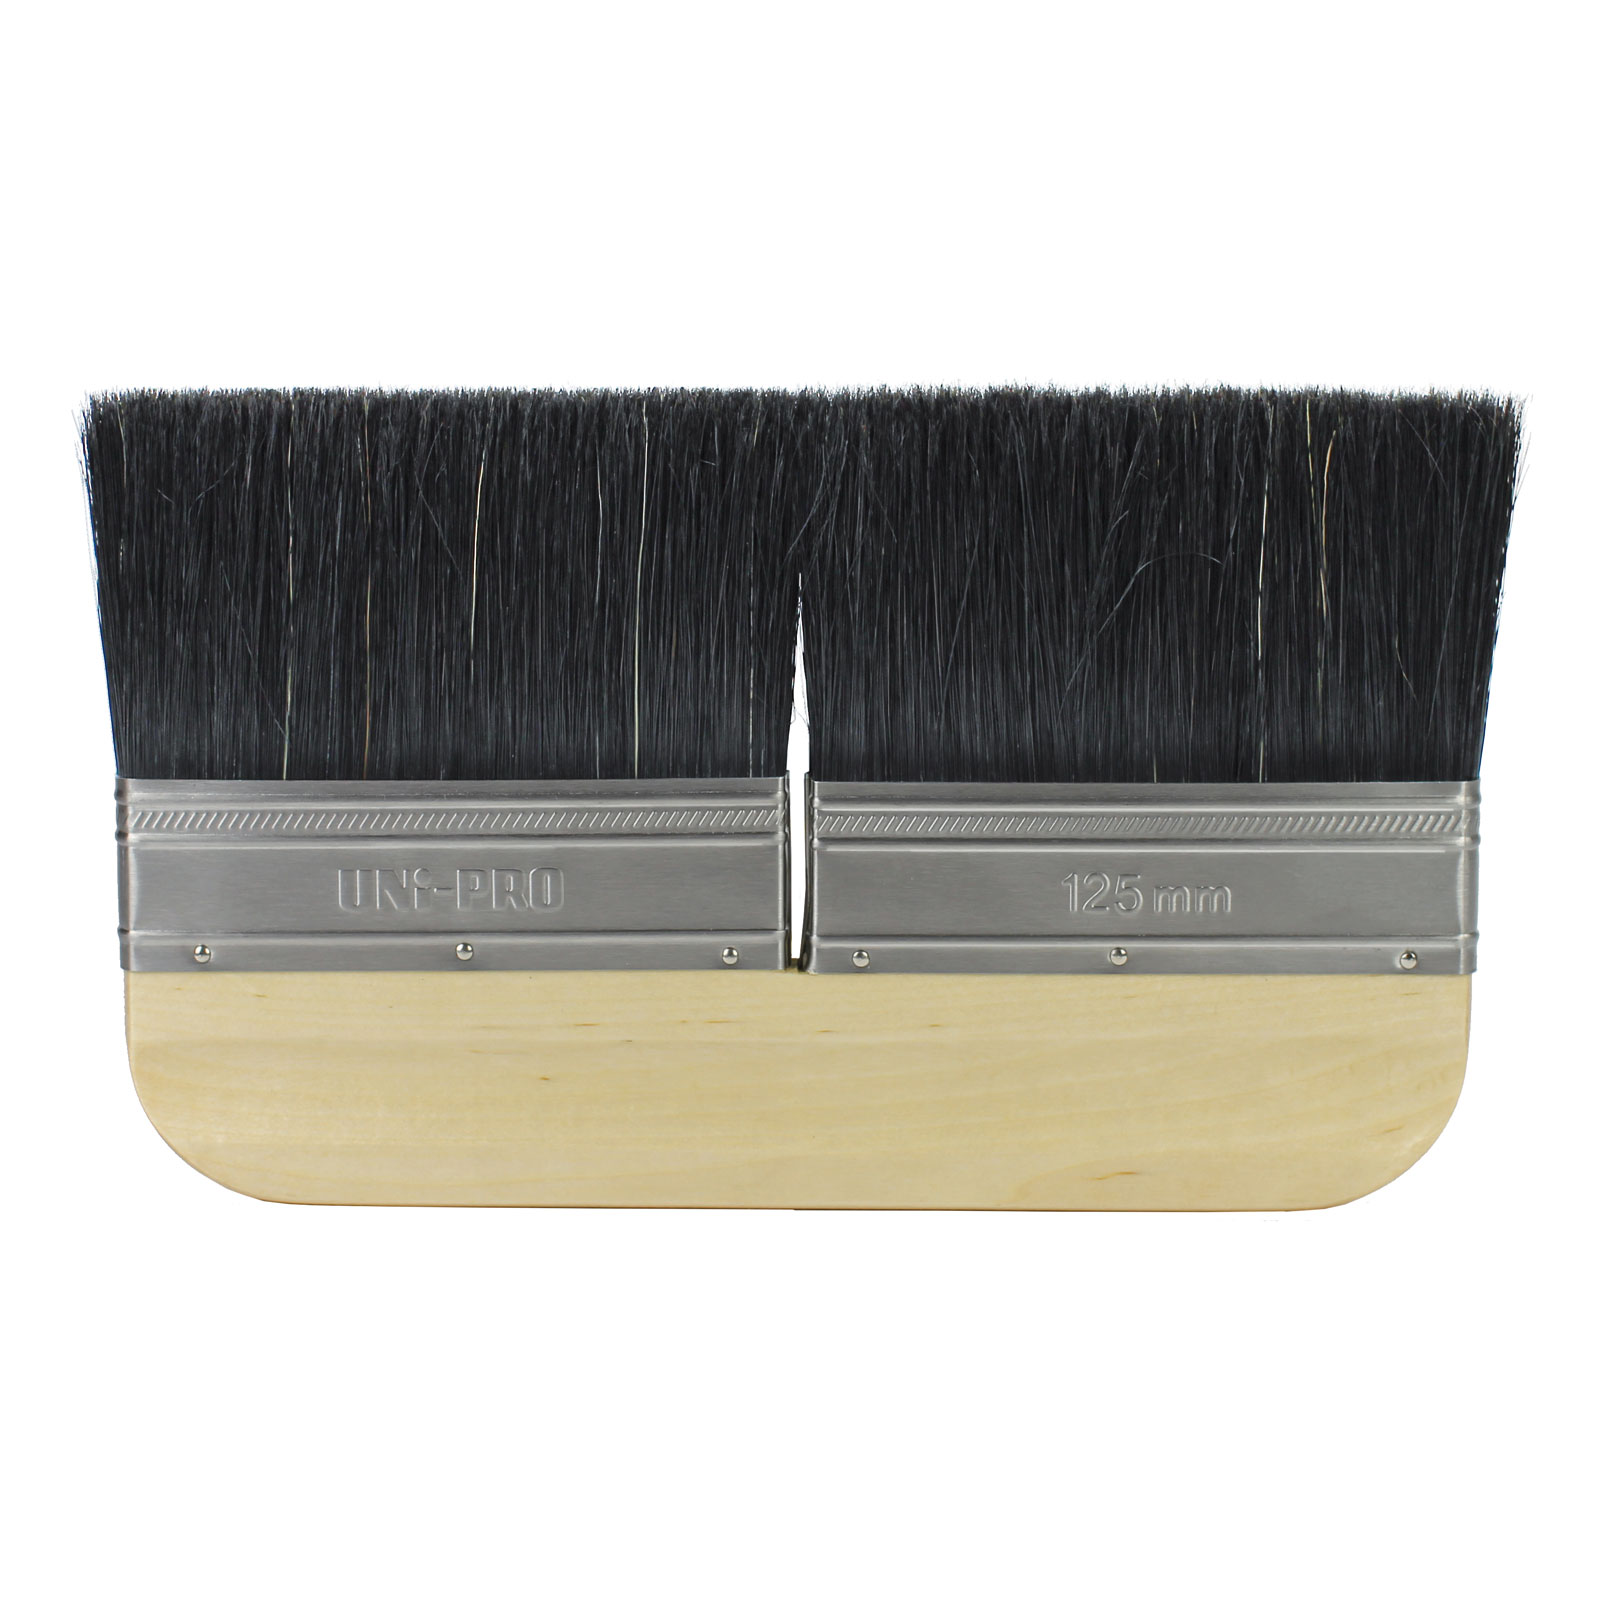 Haydn Wallpaper Paste/Lay Brush